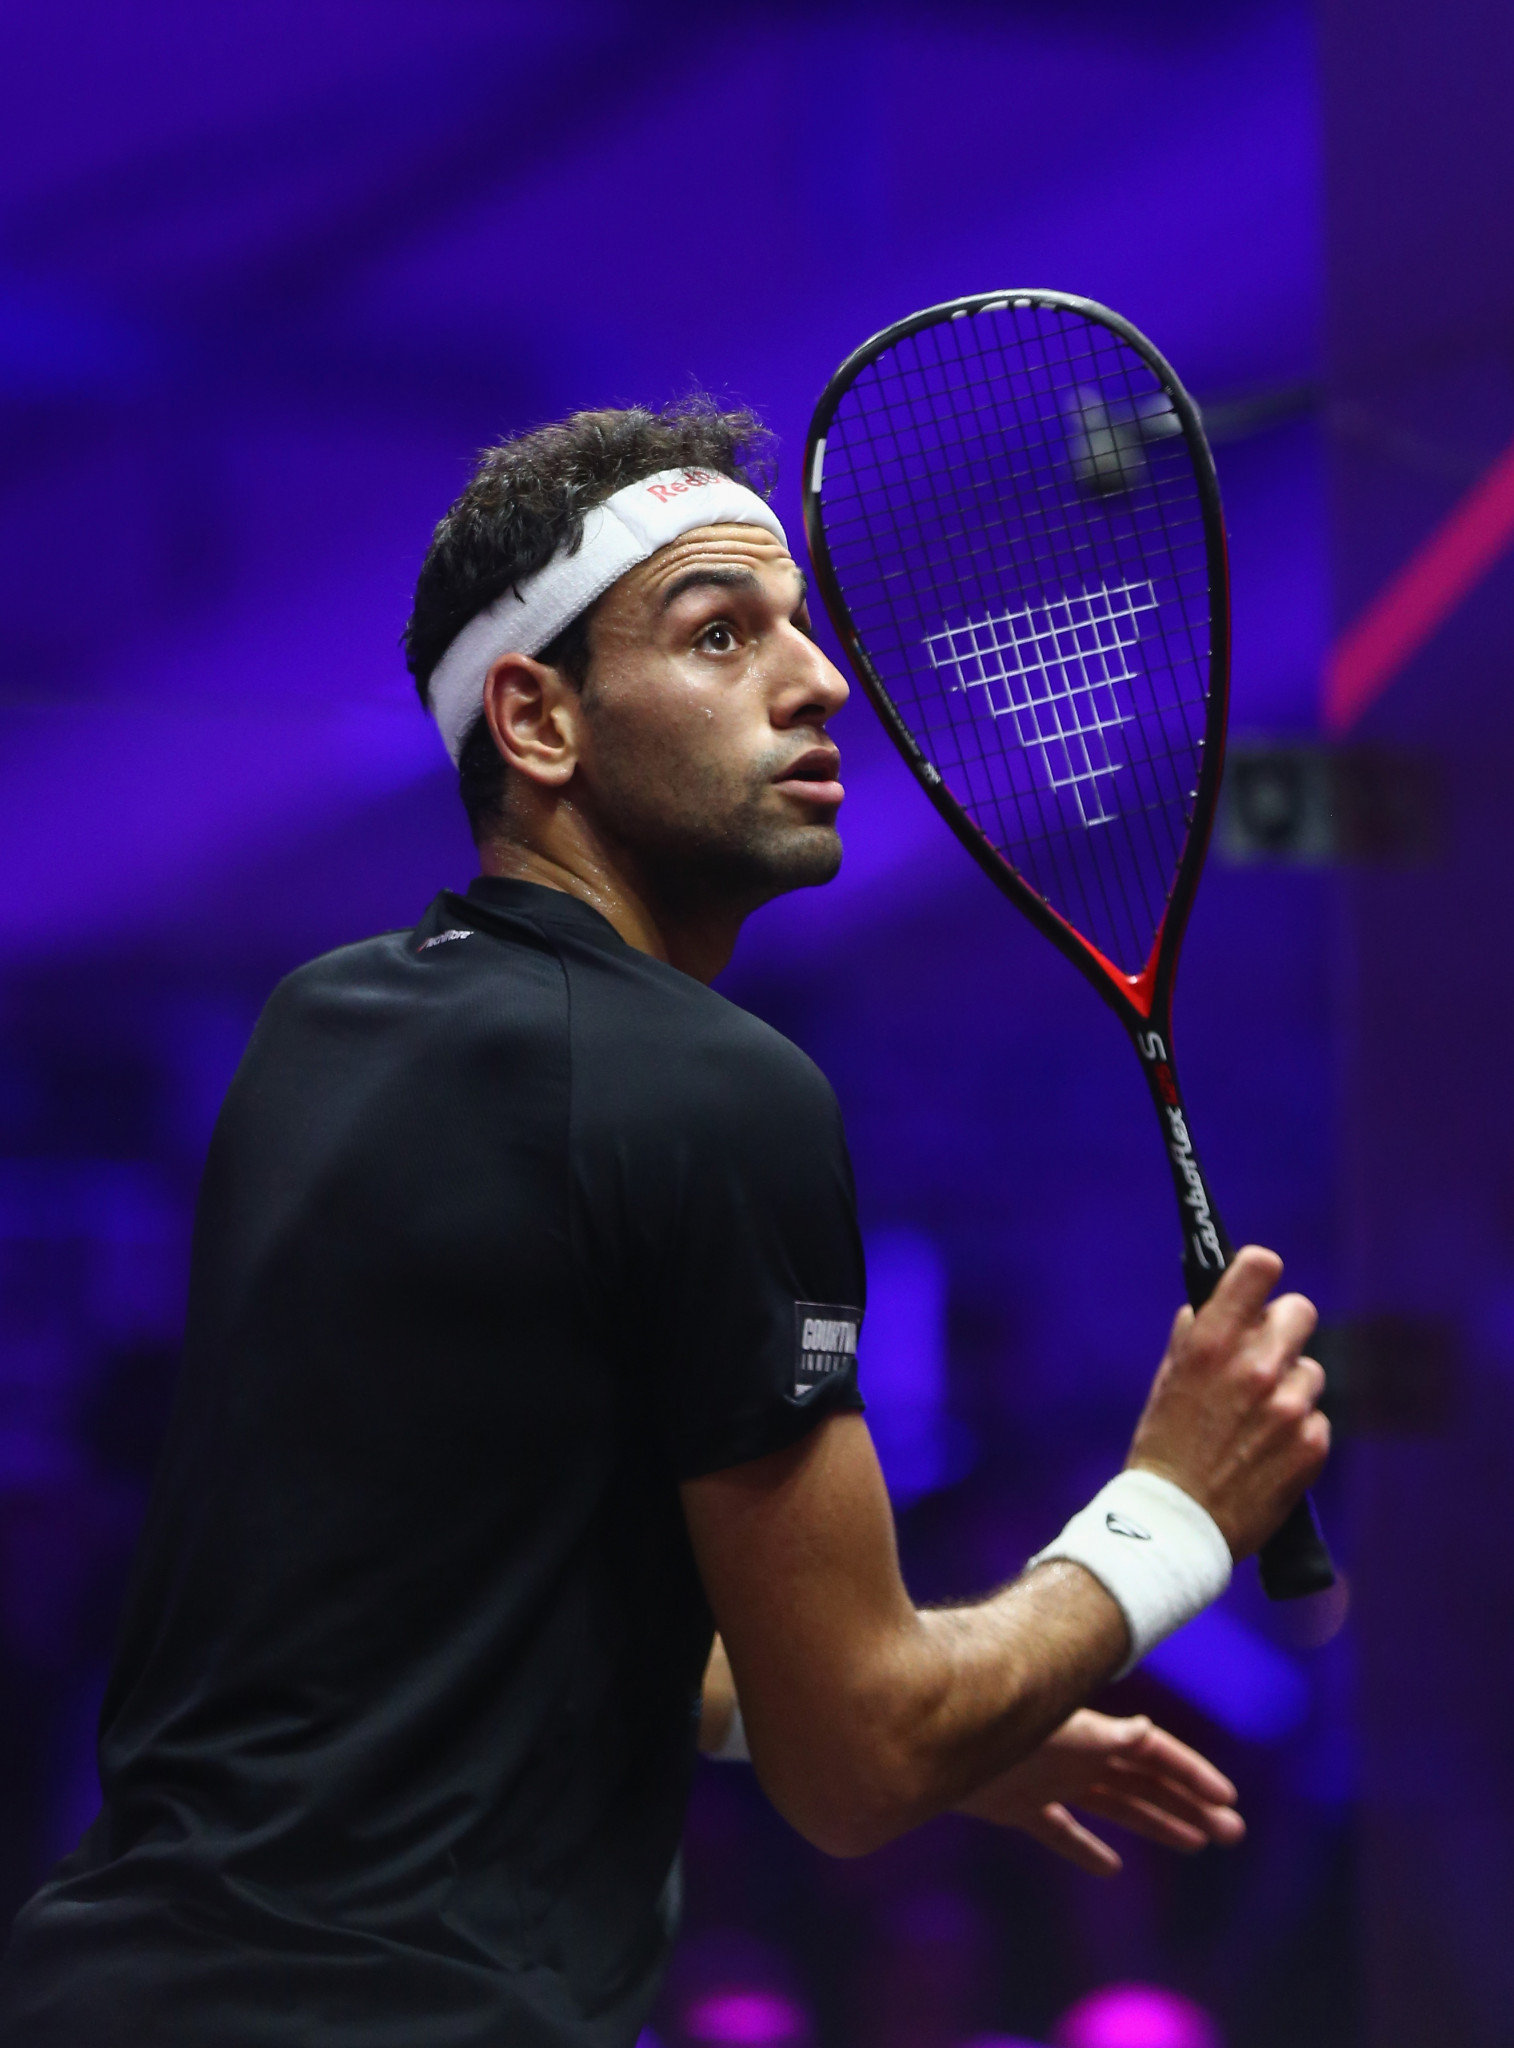 Mohamed Elshorbagy is the reigning men's PSA World Series Finals champion ©Getty Images